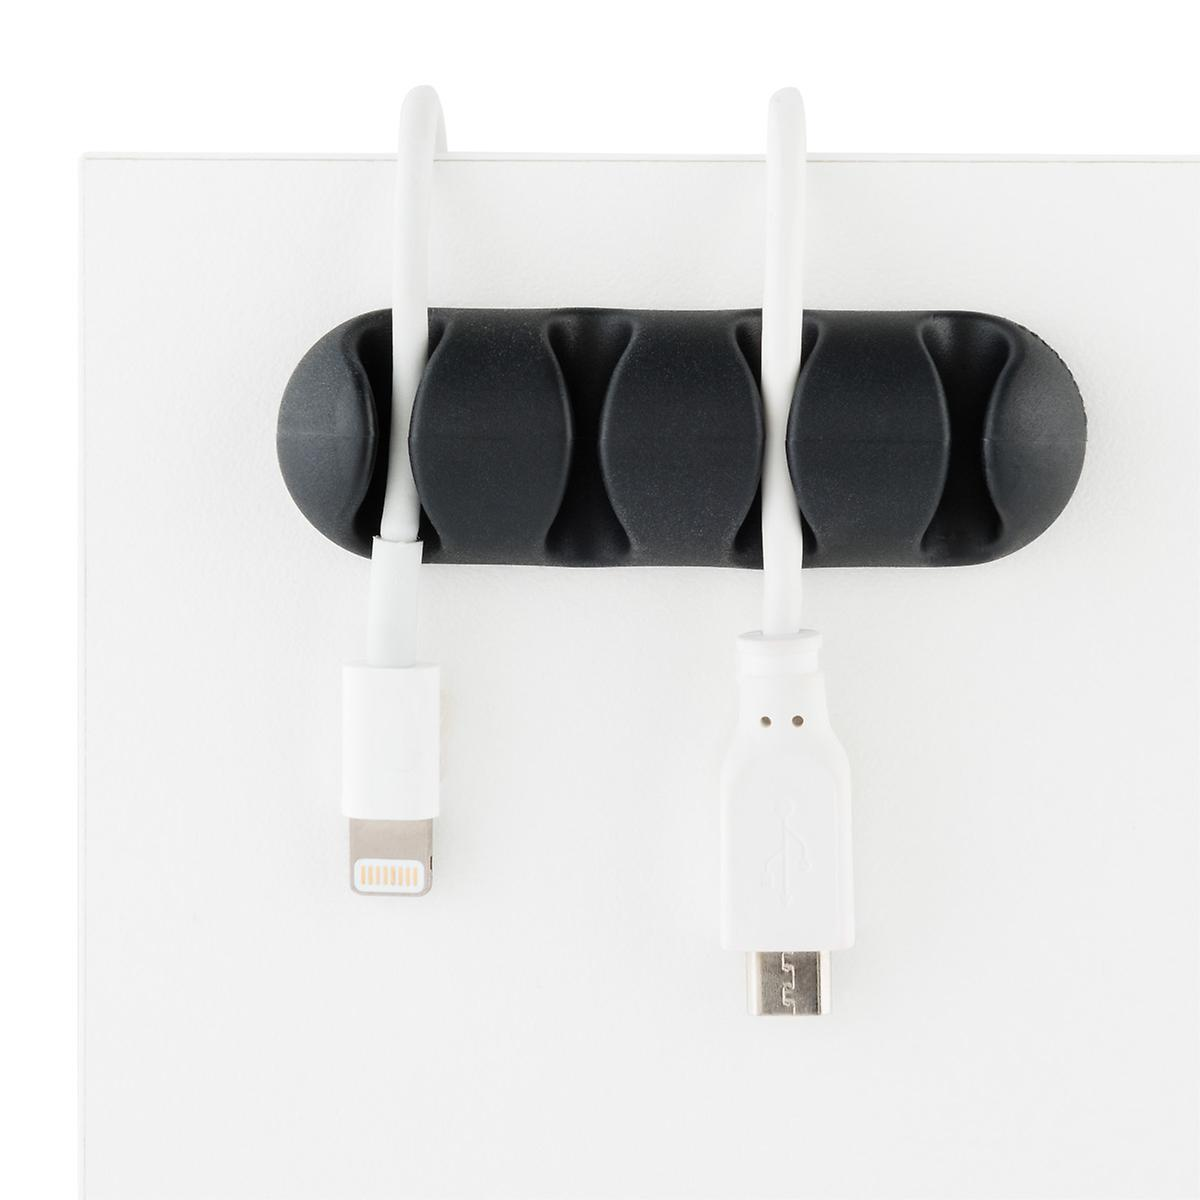 BlueLounge CableDrop Multi Adhesive Cable Clips